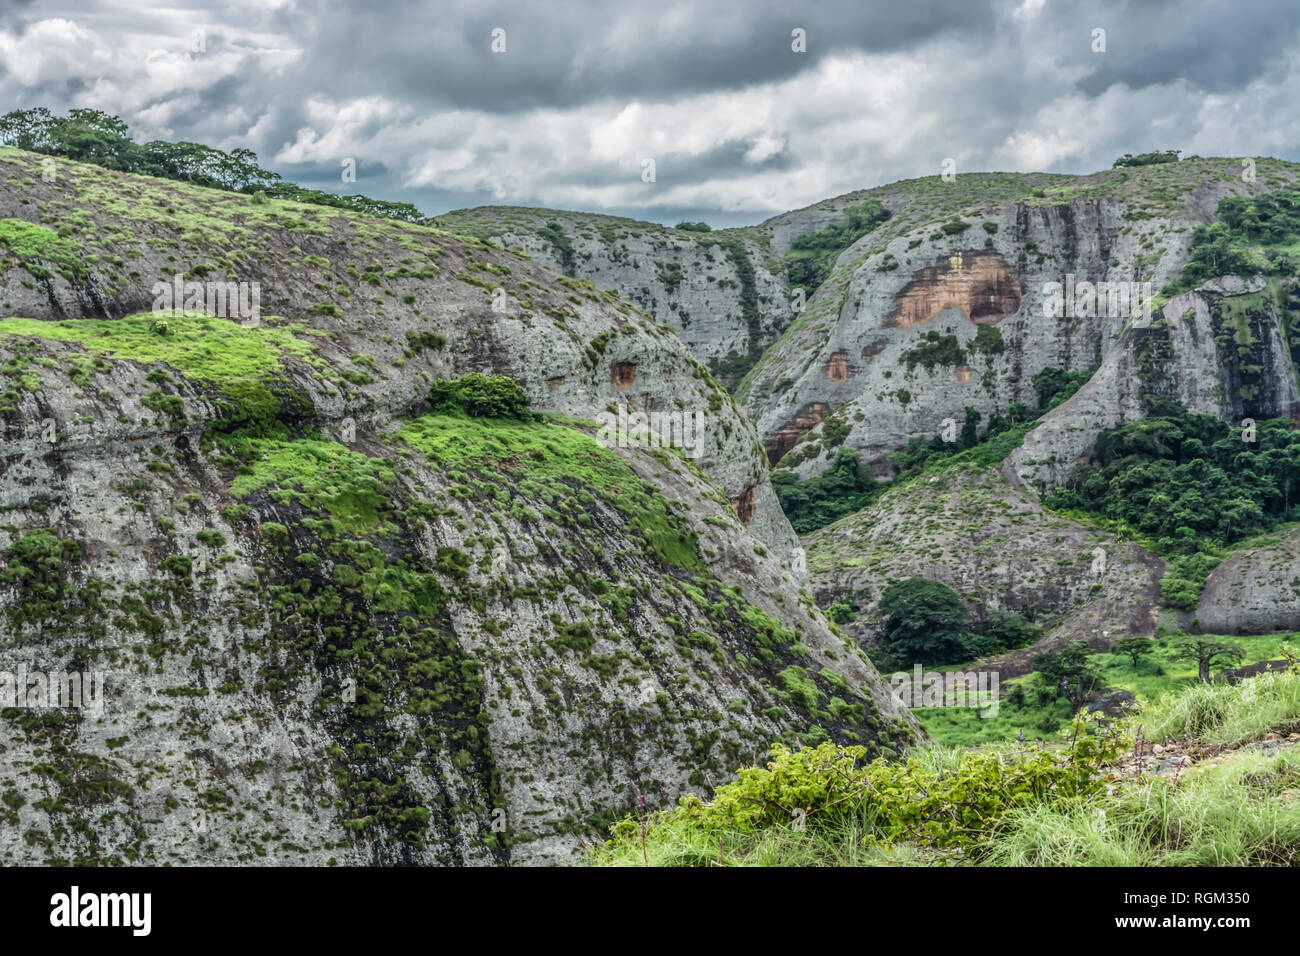 View at the mountains Pungo Andongo, Pedras Negras (black stones), huge geologic rock elements, in Malange, Angola Stock Photo